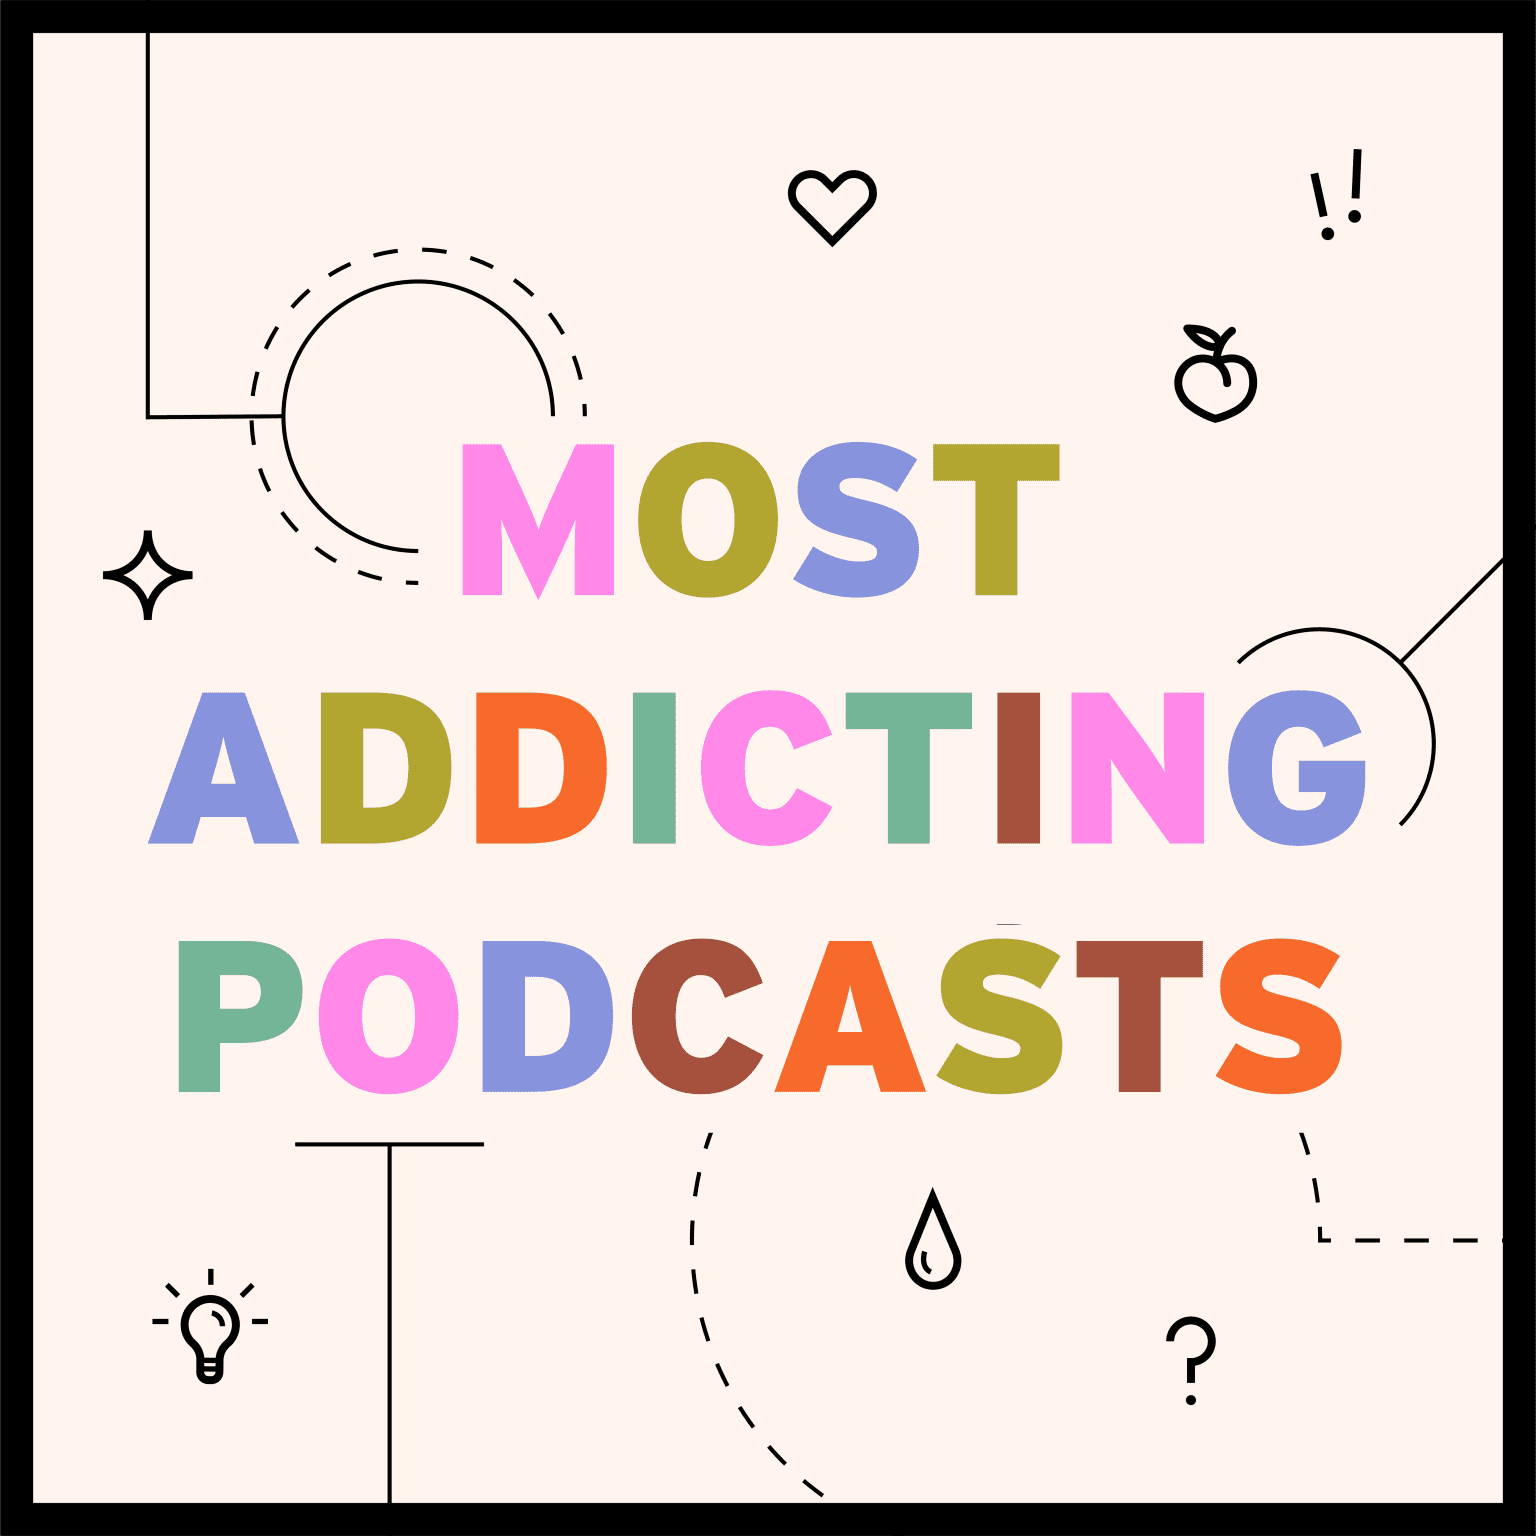 Man Repeller's Most Addicting Podcasts Infographic